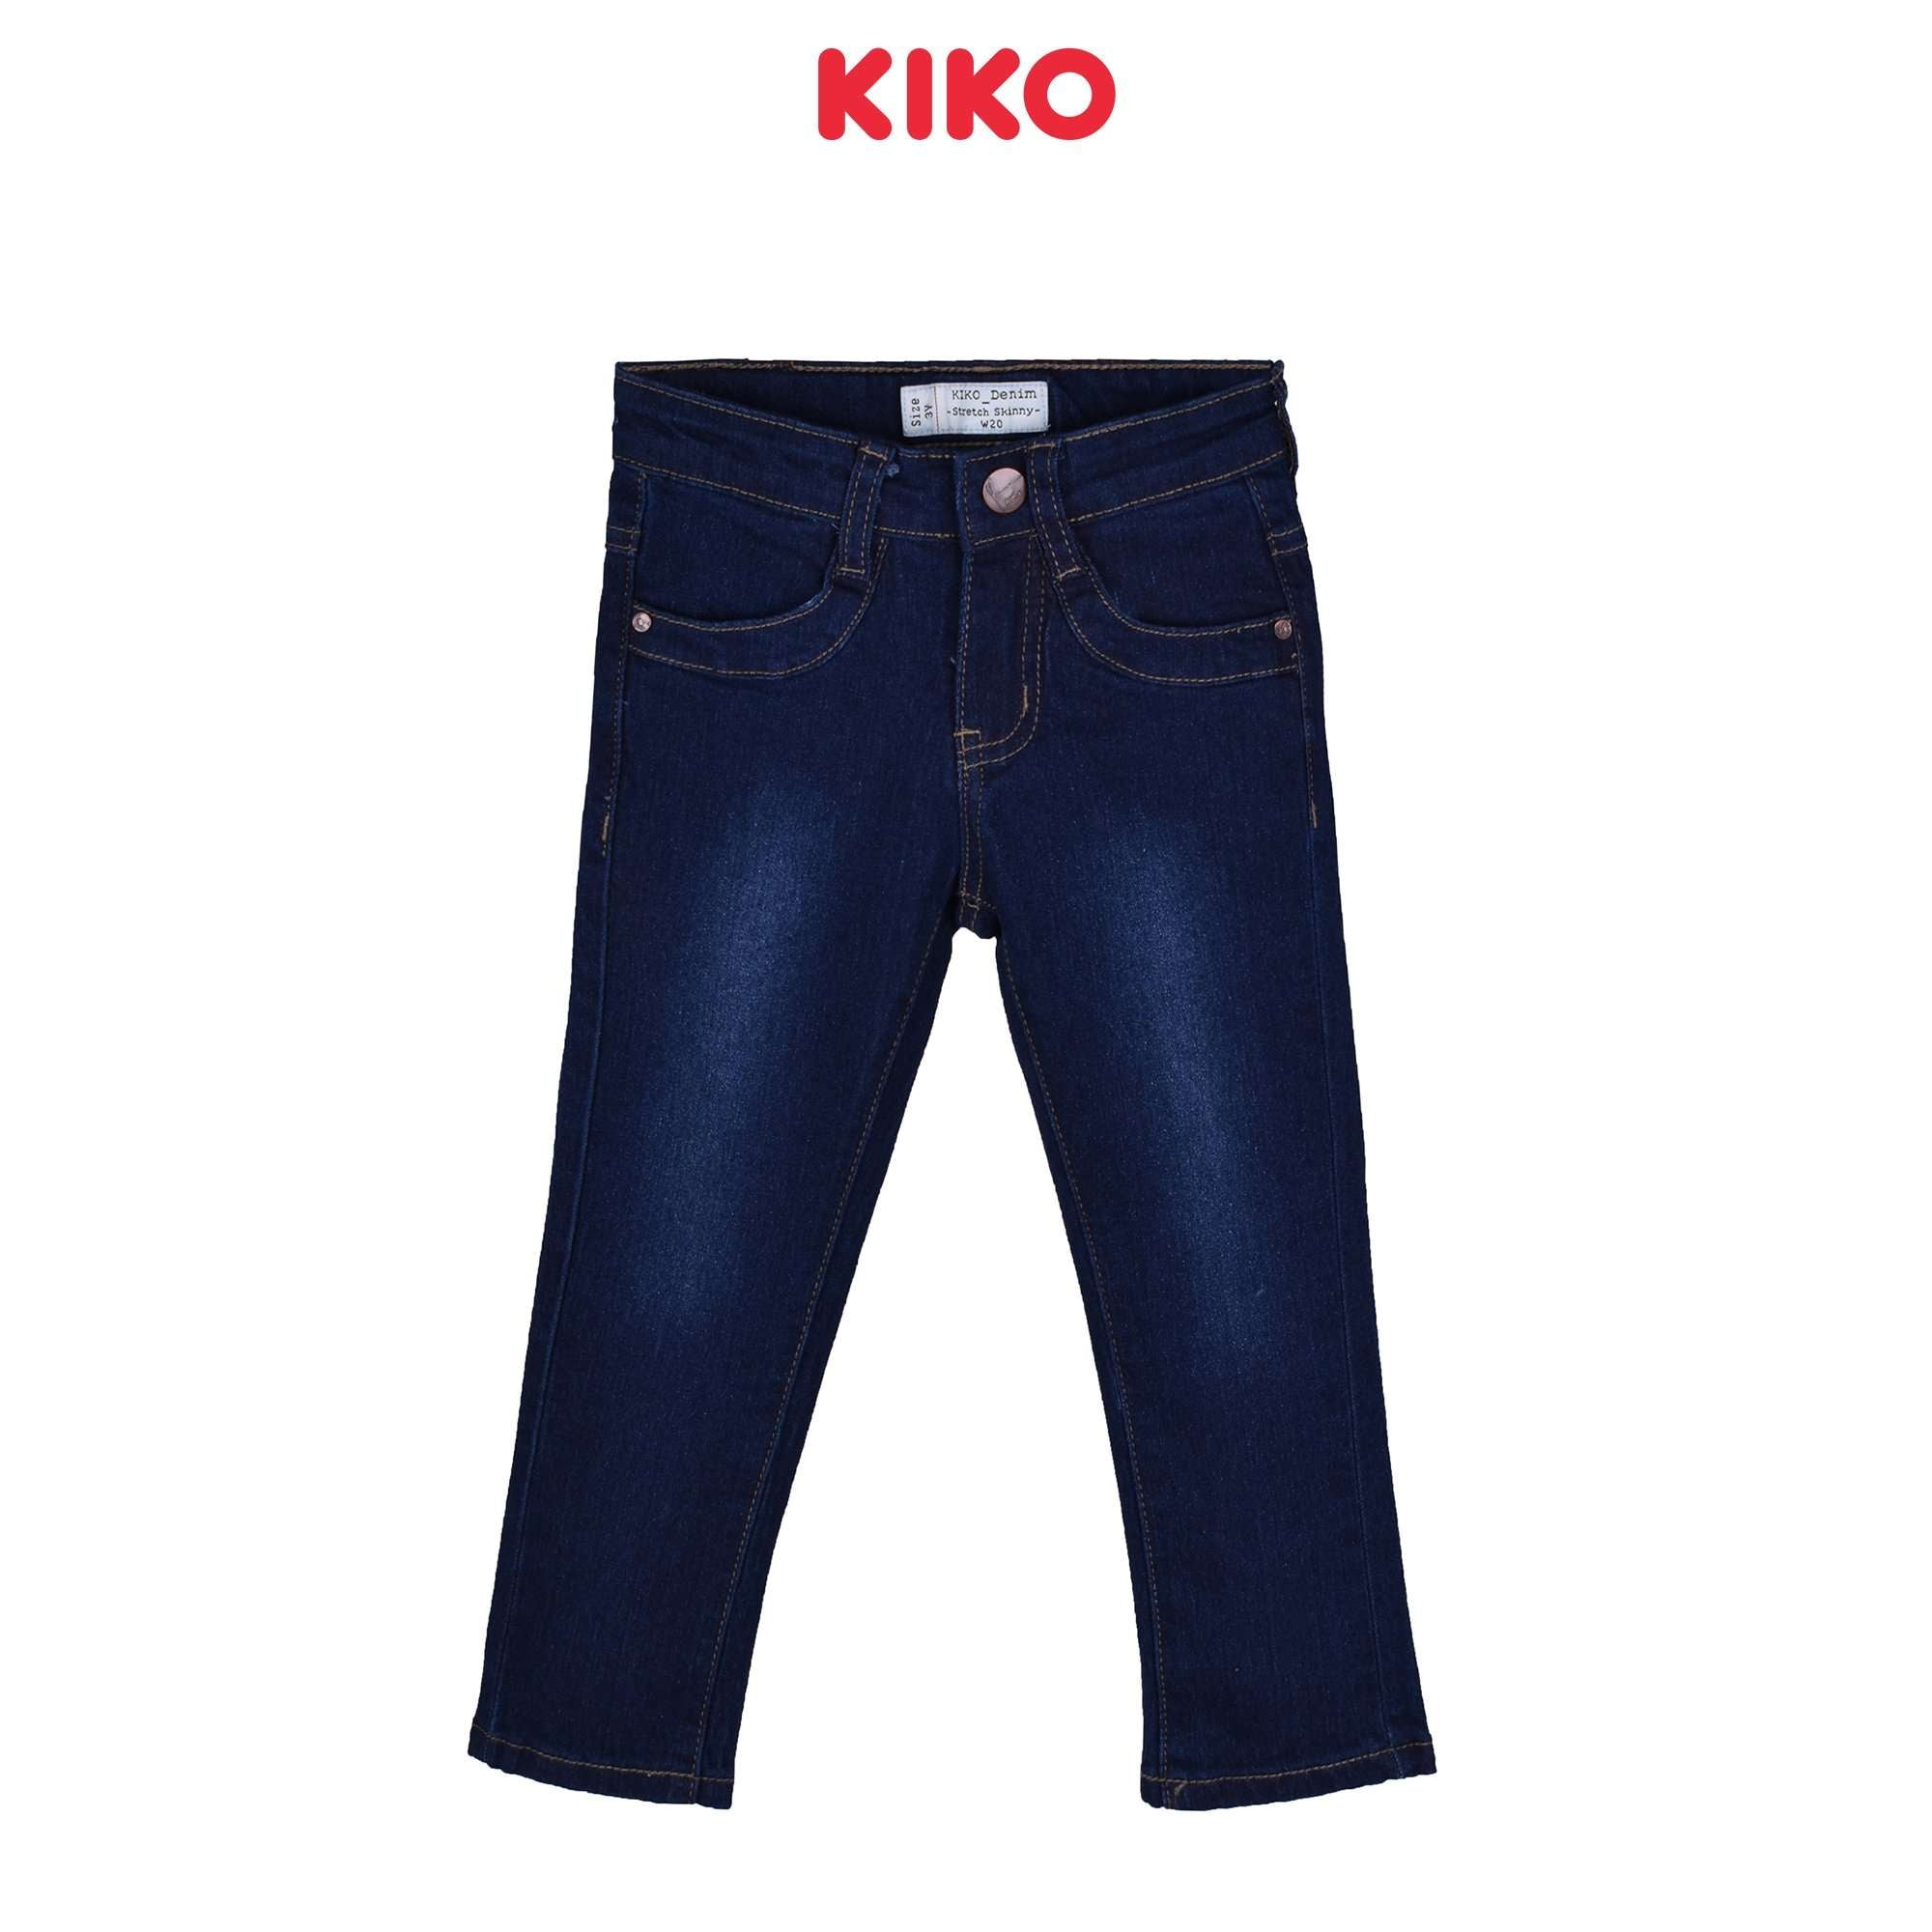 KIKO Girl Jeans Skinny Fit 135050-213 : Buy KIKO online at CMG.MY